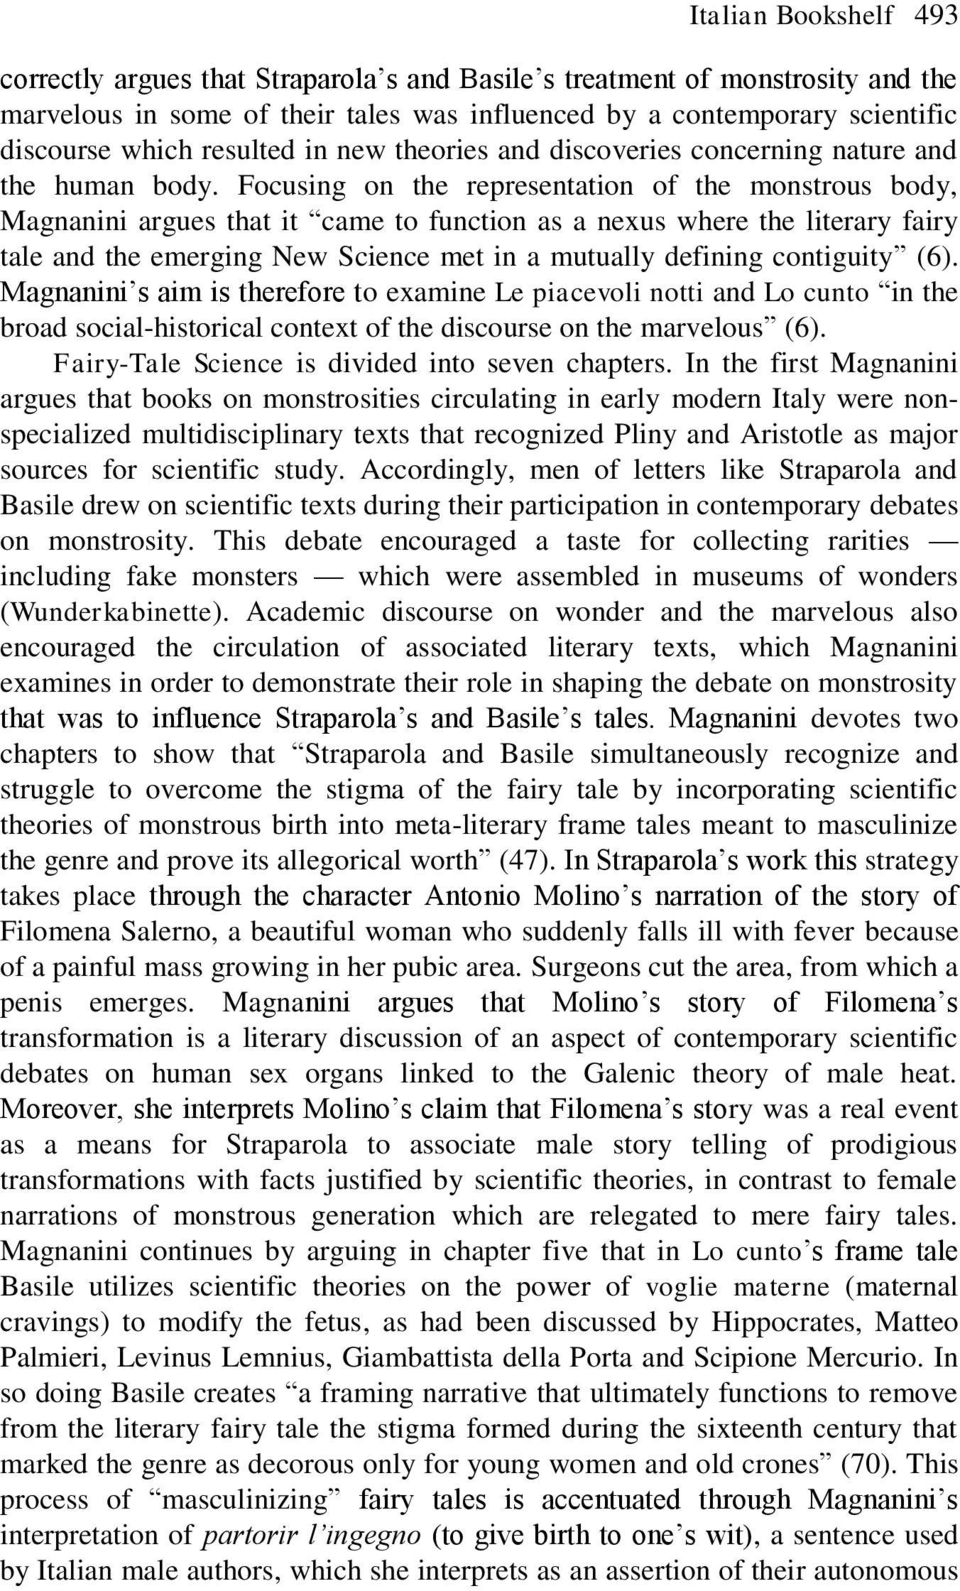 Focusing on the representation of the monstrous body, Magnanini argues that it came to function as a nexus where the literary fairy tale and the emerging New Science met in a mutually defining